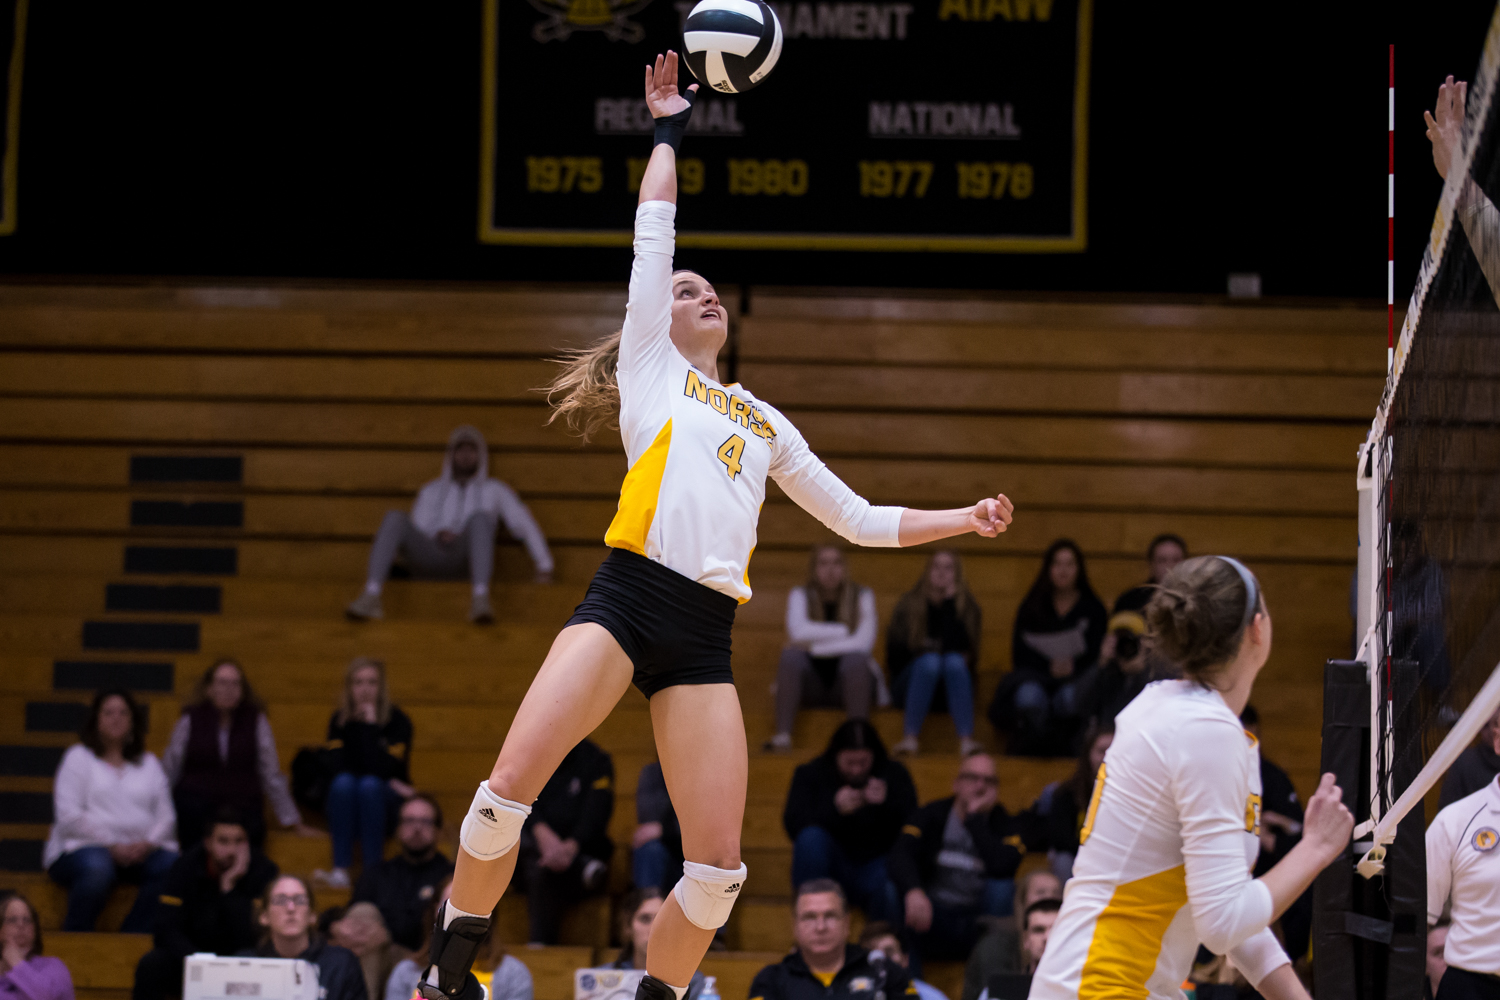 Haley Libs (4) jumps to hit a ball during the game against Oakland. Libs had 14 kills during the game.